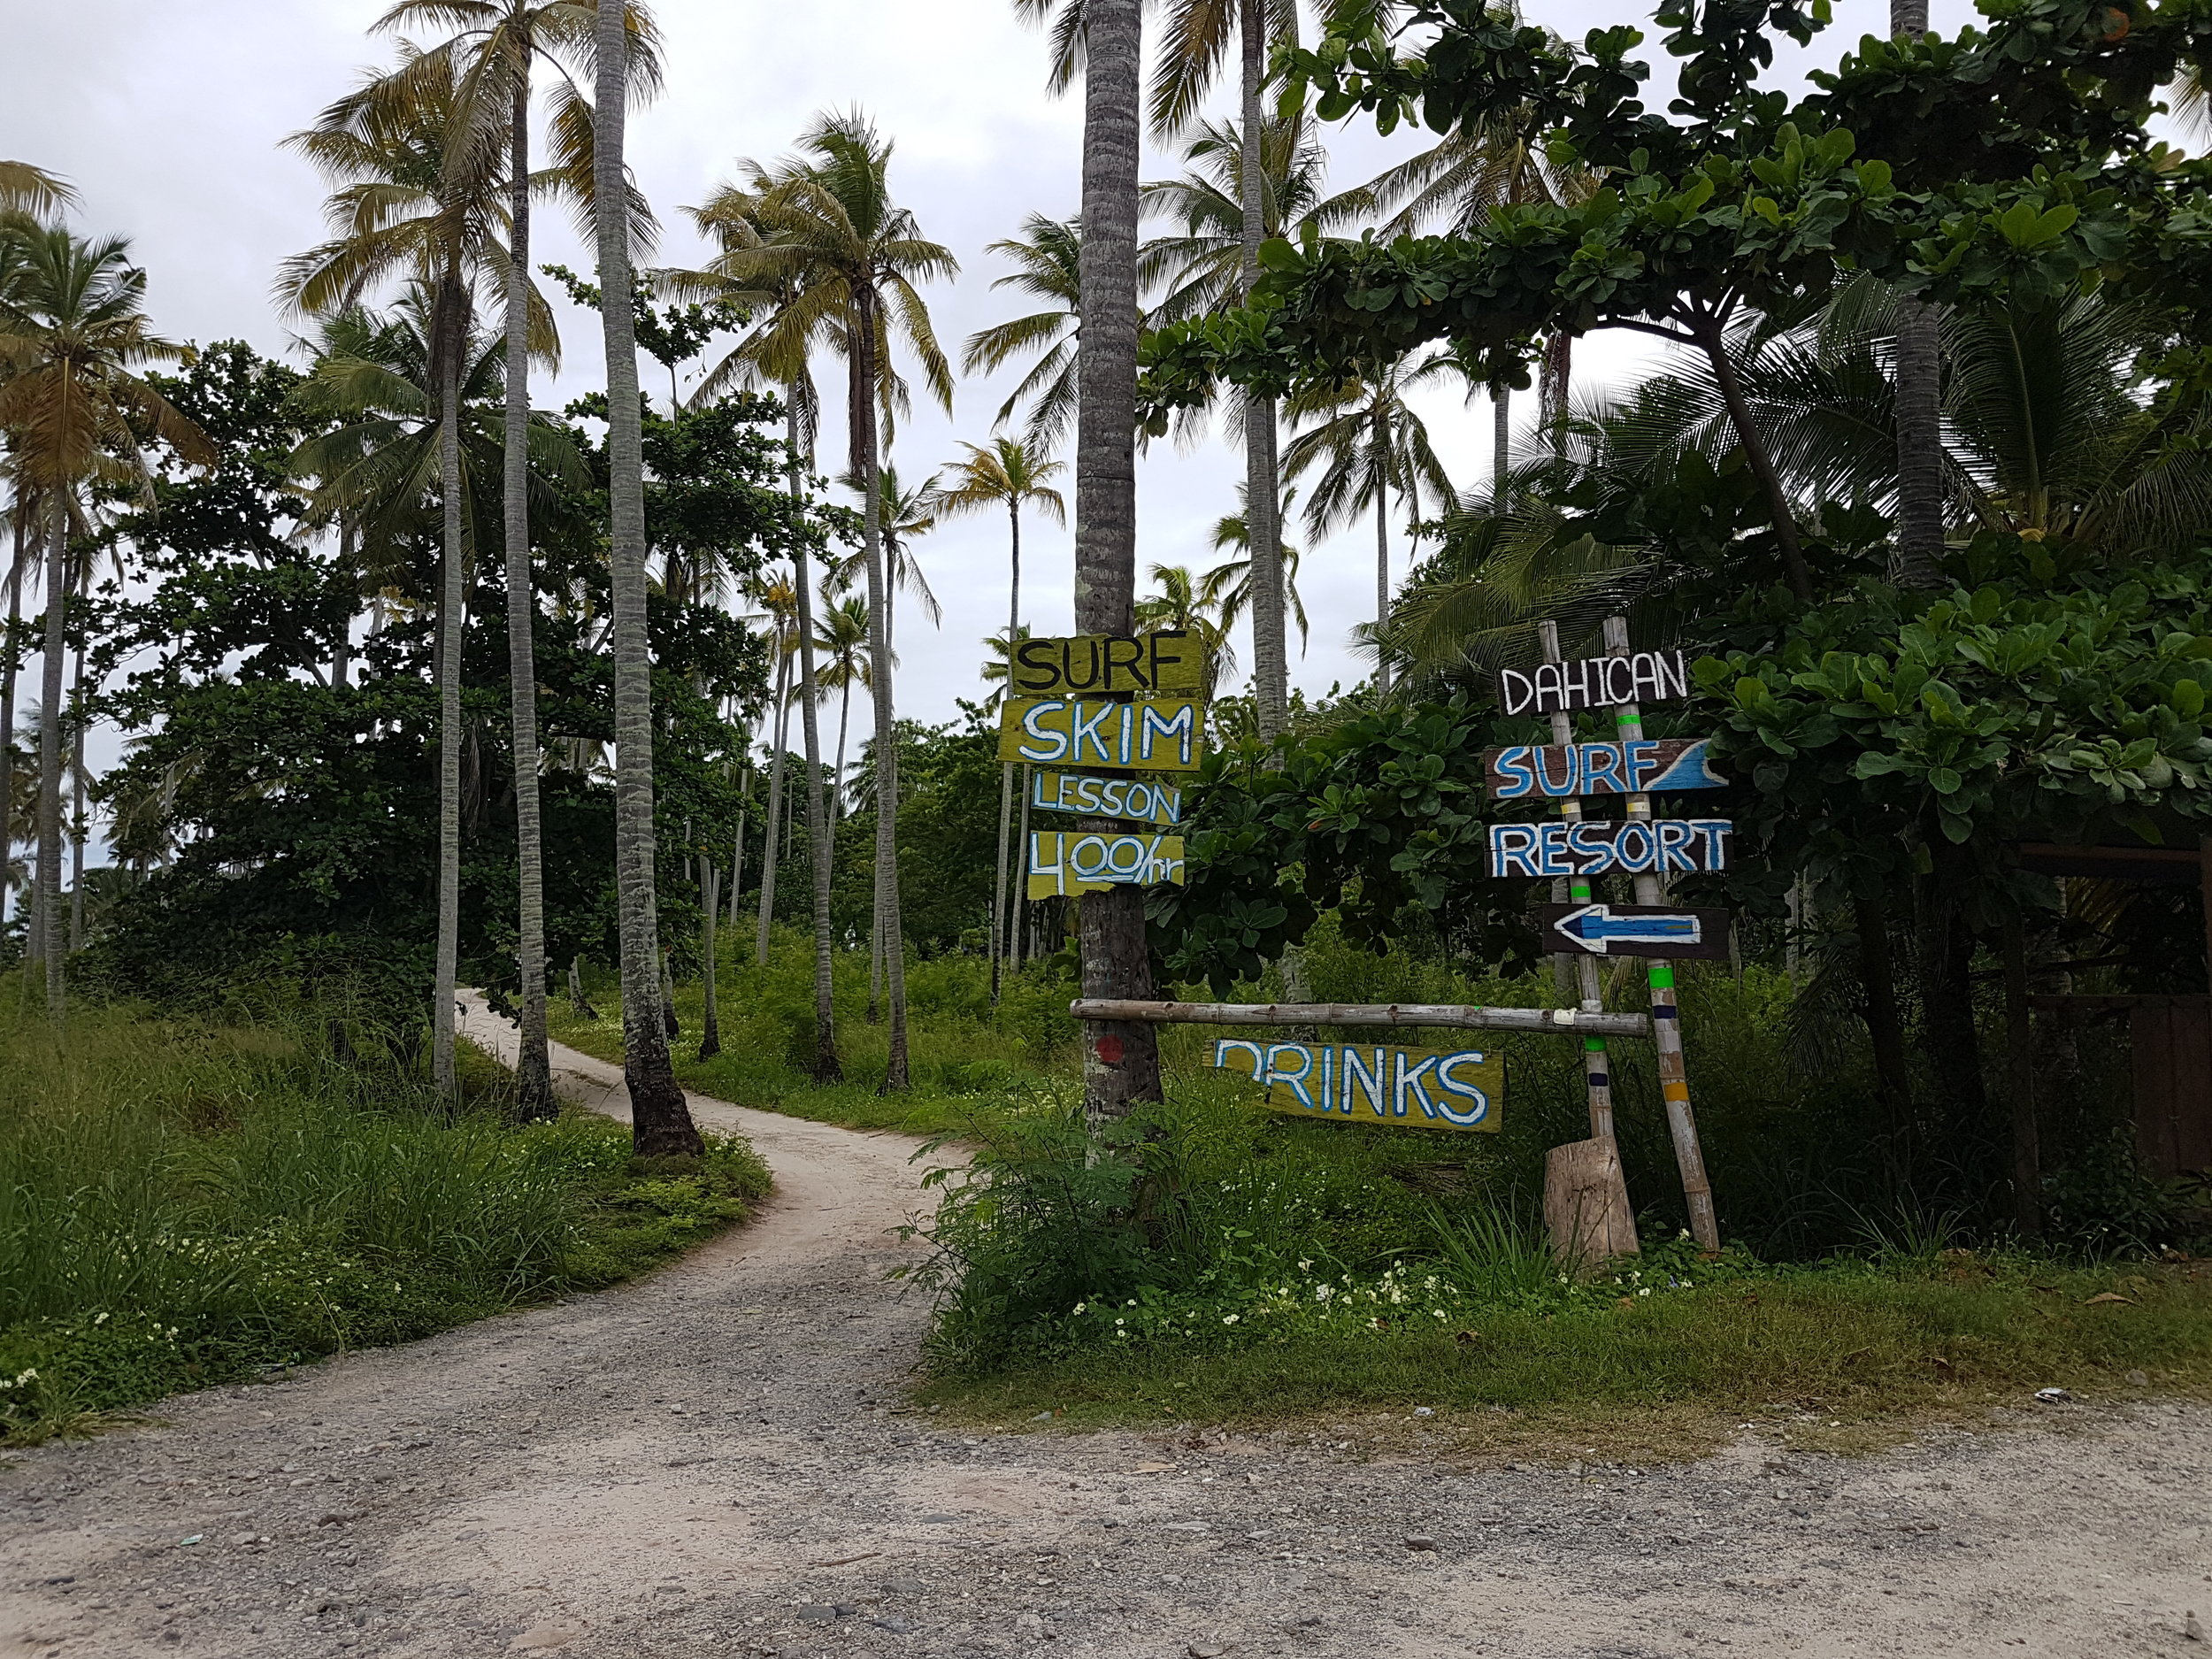 If these signs aren't inviting you to come and check out the laidback resort behind this then maybe you aren't that stressed enough yet. Surf and skim lessons are also offered in other resorts around the area but I've only tried it in Dahican Surf Resort.